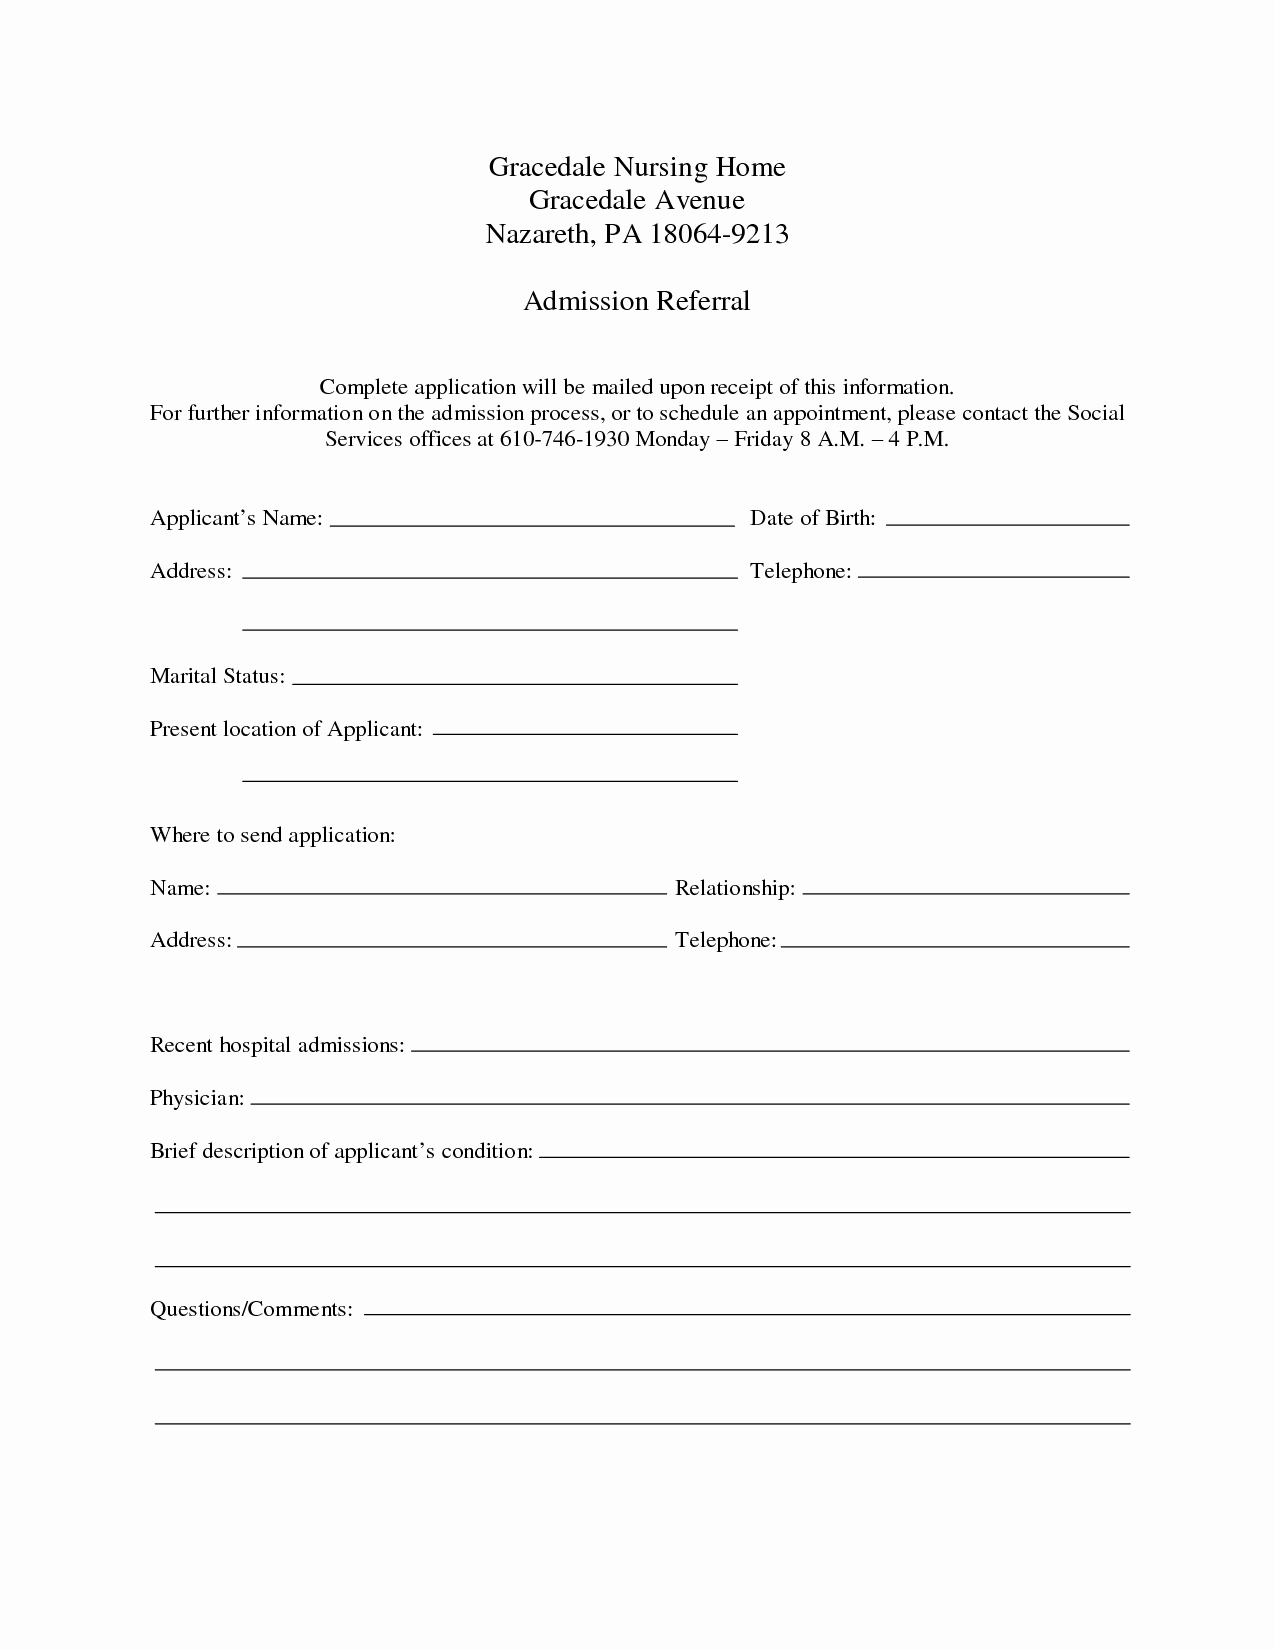 Hospital Release form Template Unique Hospital Admission form Template Portablegasgrillweber